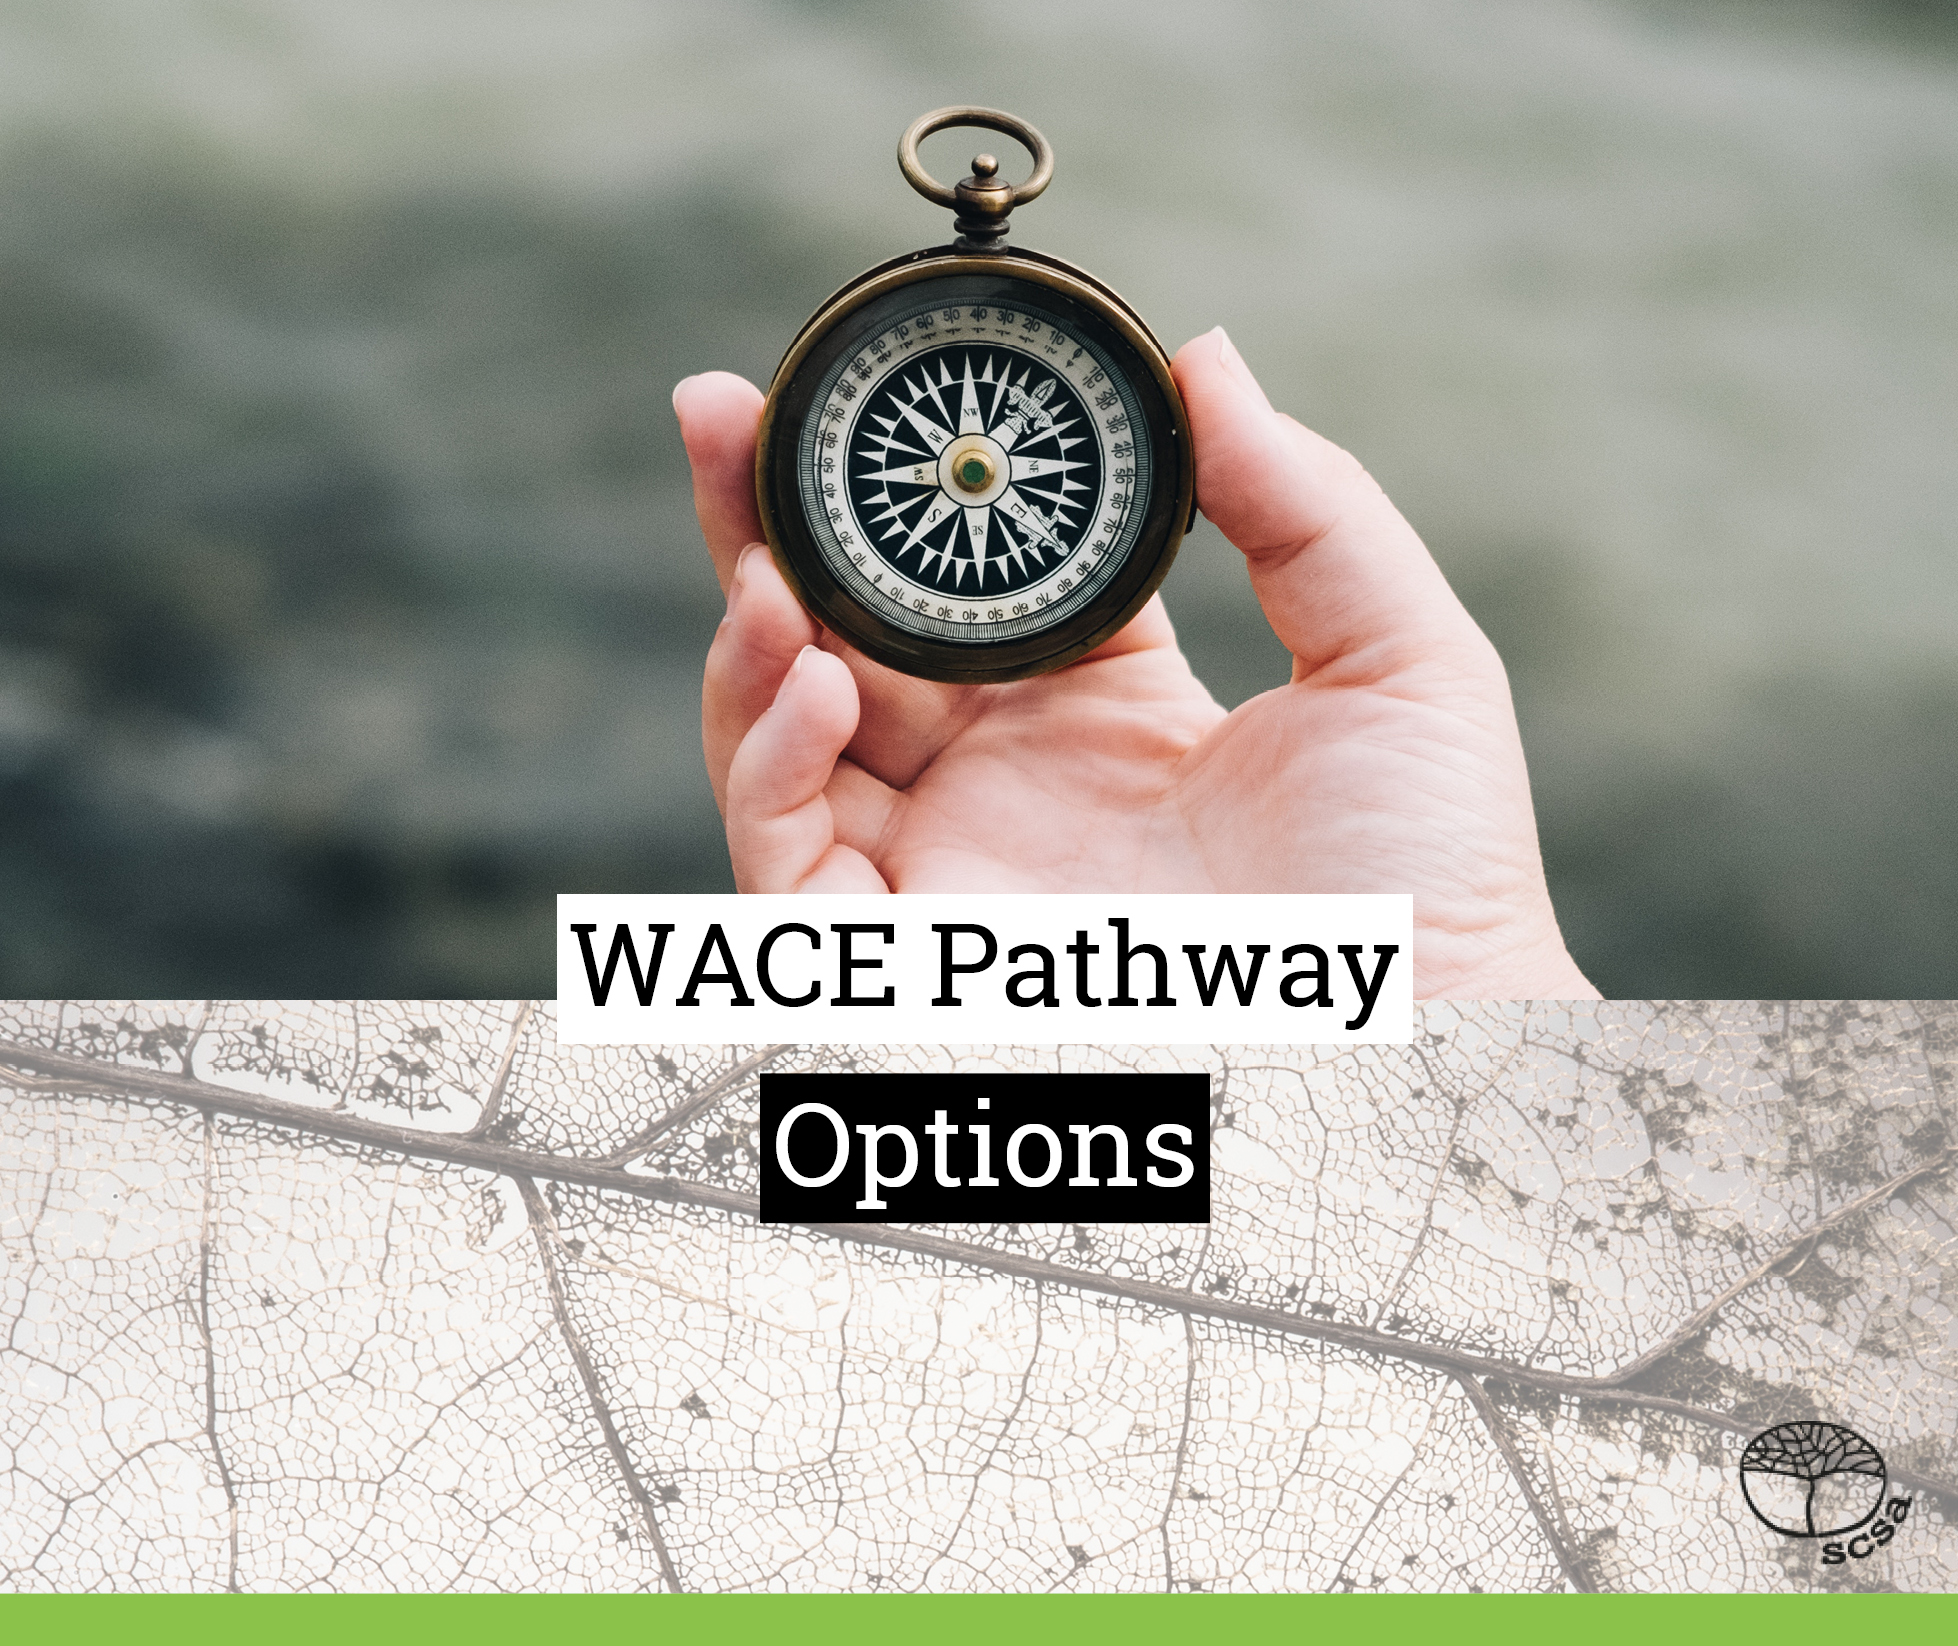 WACE pathway options